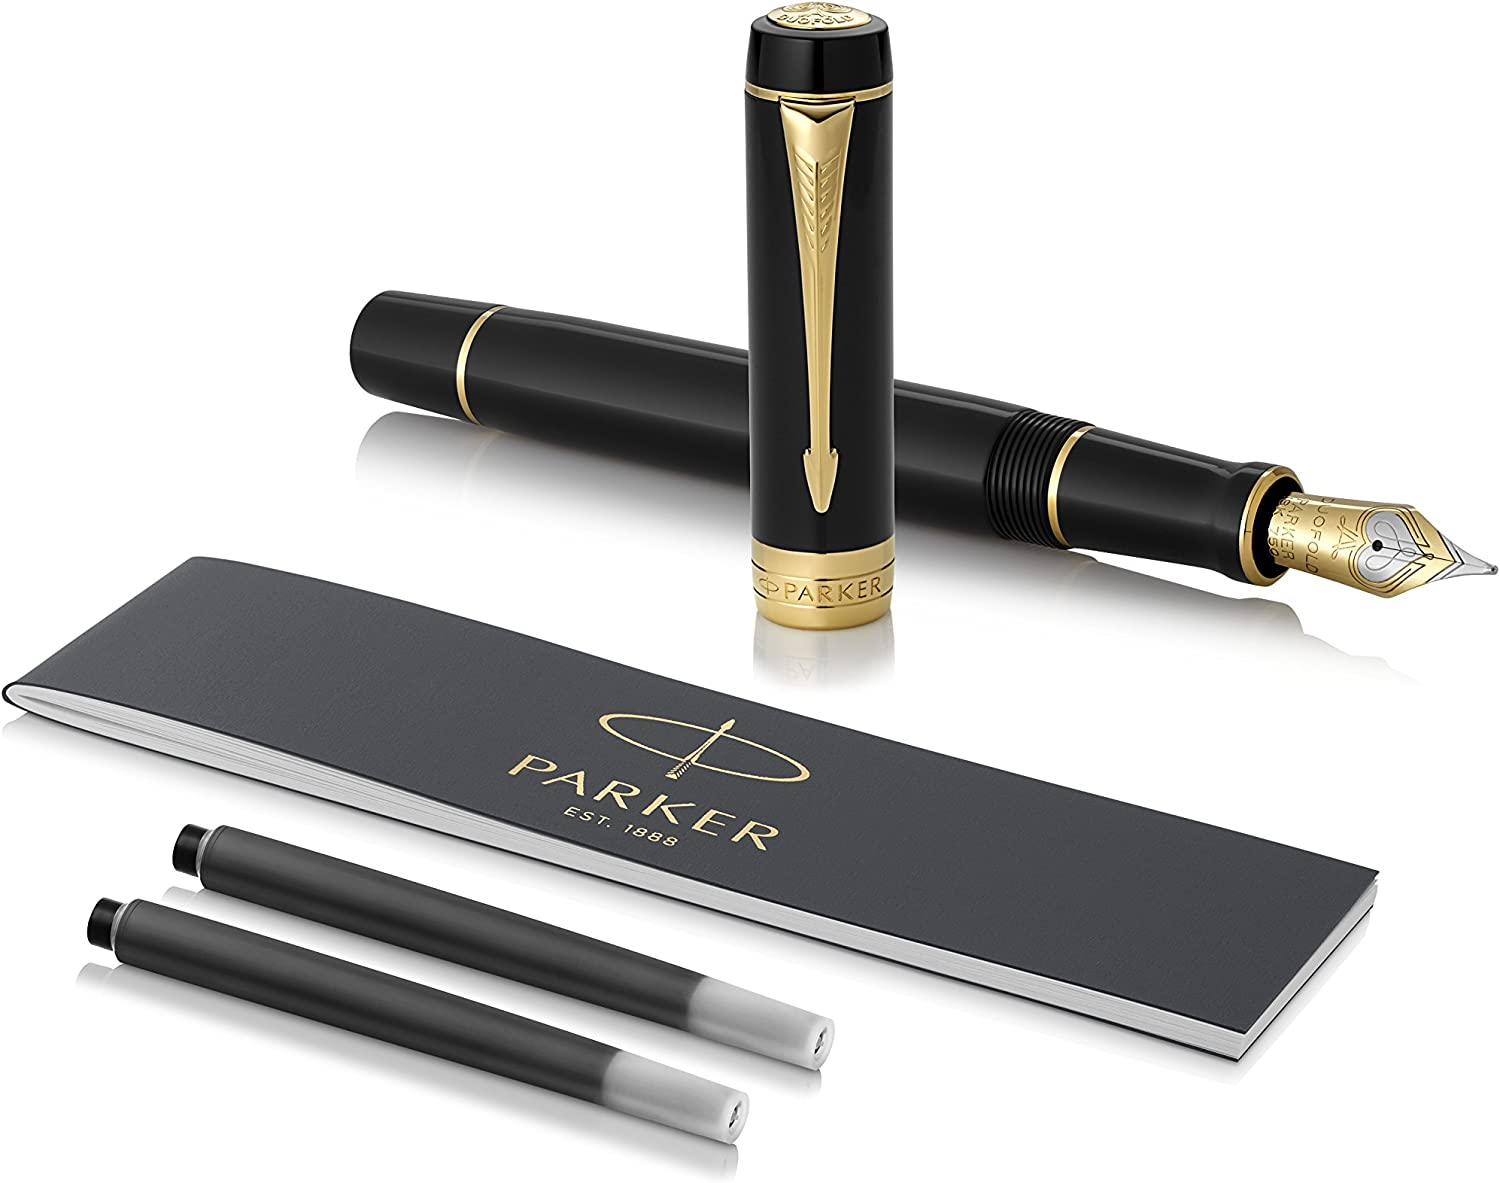 Premium Gift Box Medium Solid Gold Nib Classic Big Red Vintage Black Ink and Convertor Parker Duofold Centennial Fountain Pen